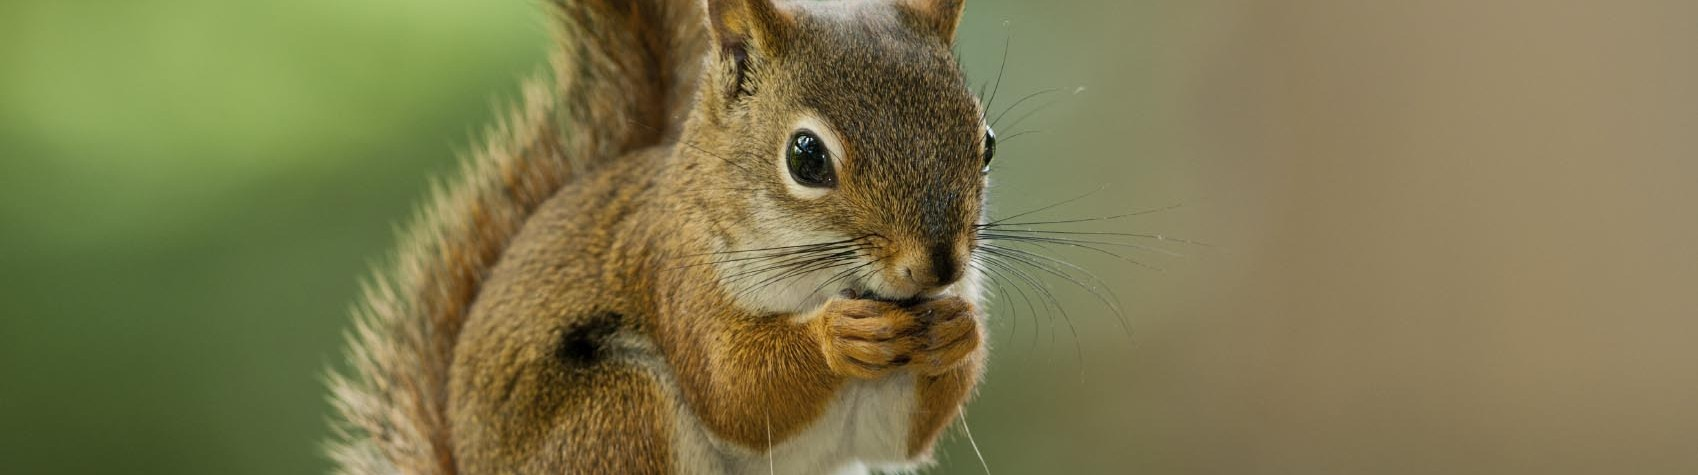 Image of a American Red Squirrel